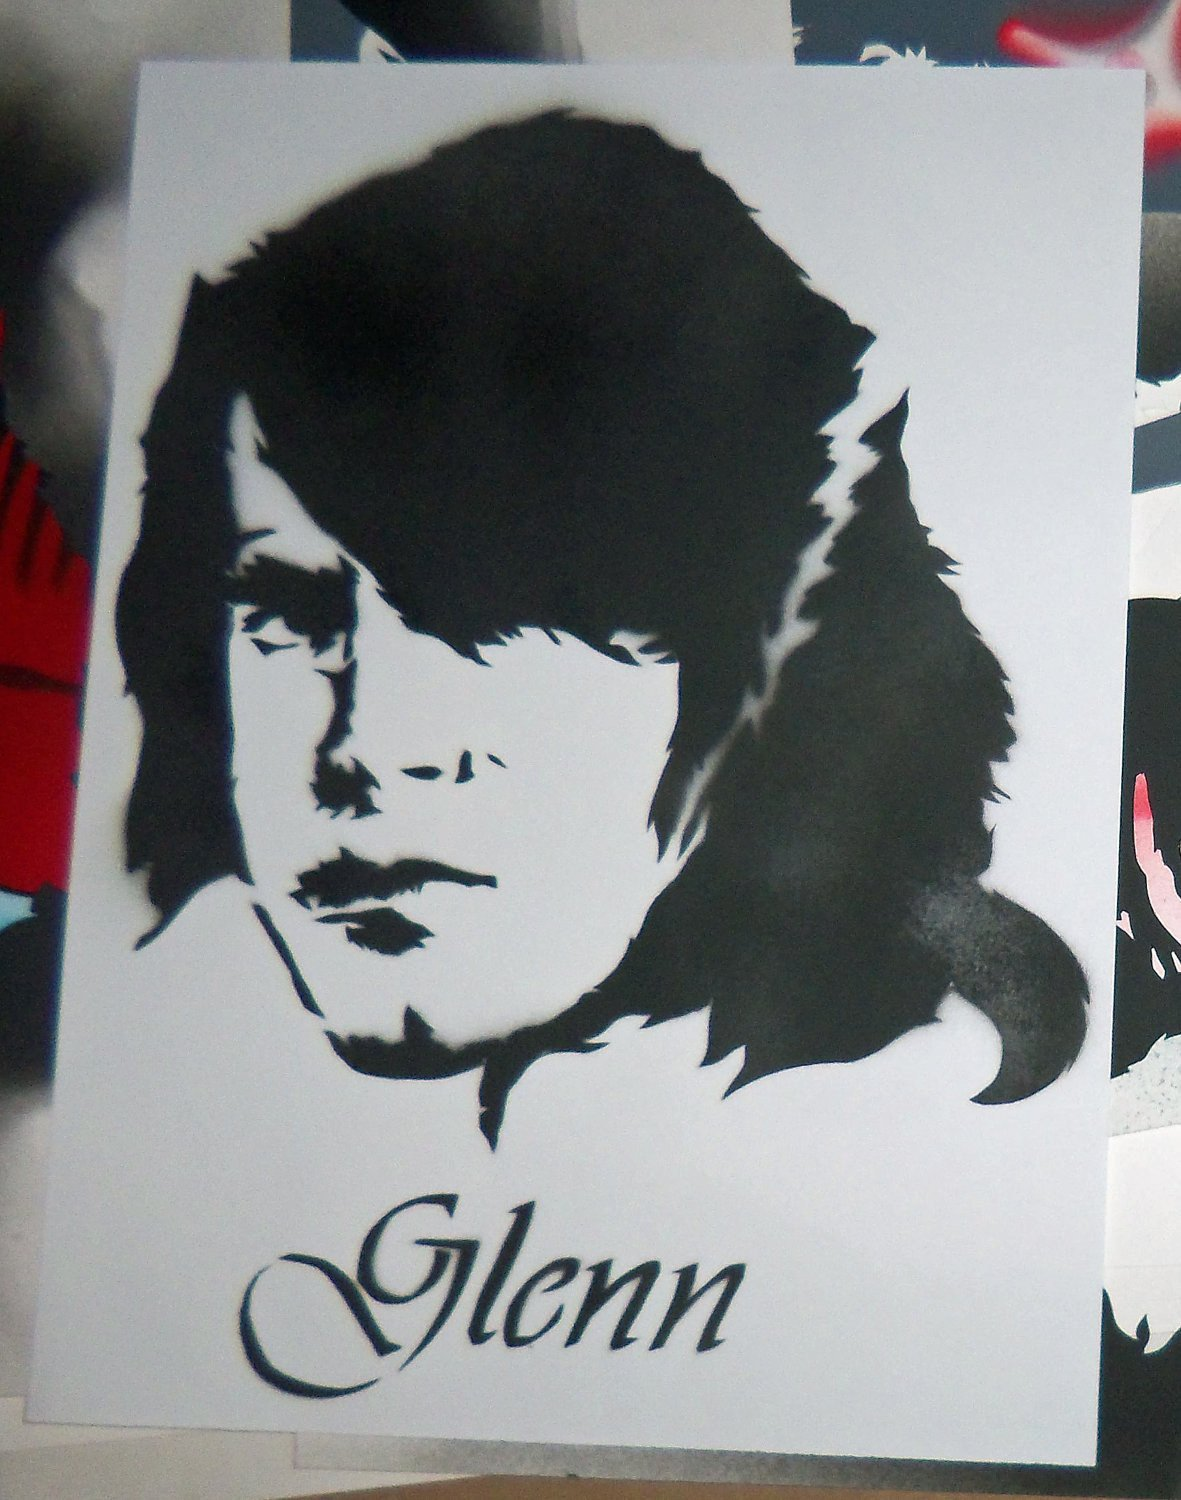 Spray Paint Art Stencils Items Similar to Glenn Danzig Spray Paint Stencil Painting